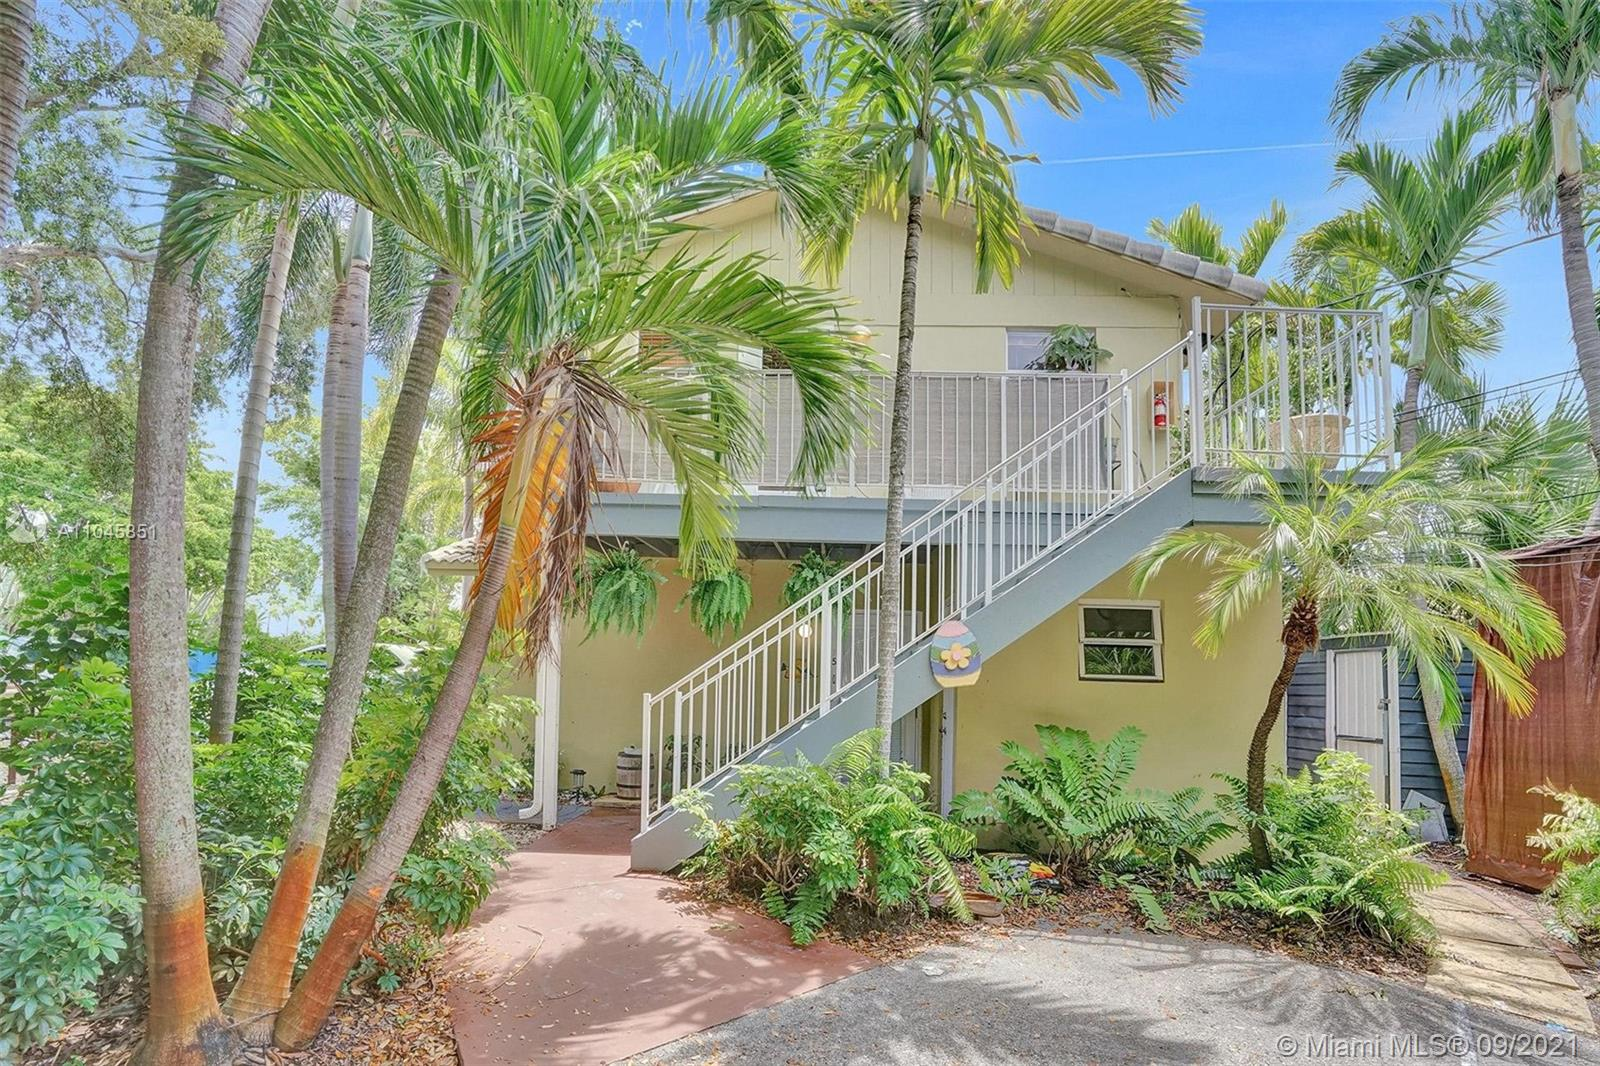 SEASONAL RENTAL - AVAILABLE ON A MONTHLY BASIS. Located in the heart of the highly desired Victoria Park neighborhood. Guests will enjoy the close proximity to the best that Fort Lauderdale has to offer like the many great restaurants and nightlife, beaches, Las Olas Blvd, Flagler Village, the Art District, Downtown, Galleria Mall, and the airport and cruise port. This cozy home is a one-bedroom, one-bath unit. It is tastefully decorated with unique pop culture art pieces and new furniture. Enjoy cable TV and his speed wifi throughout the unit. The couch in the living room does extend out to become an additional sleeping space large enough for two people. Enjoy a king-size bed in the main bedroom and ample closet space. Sleeps up to four people.